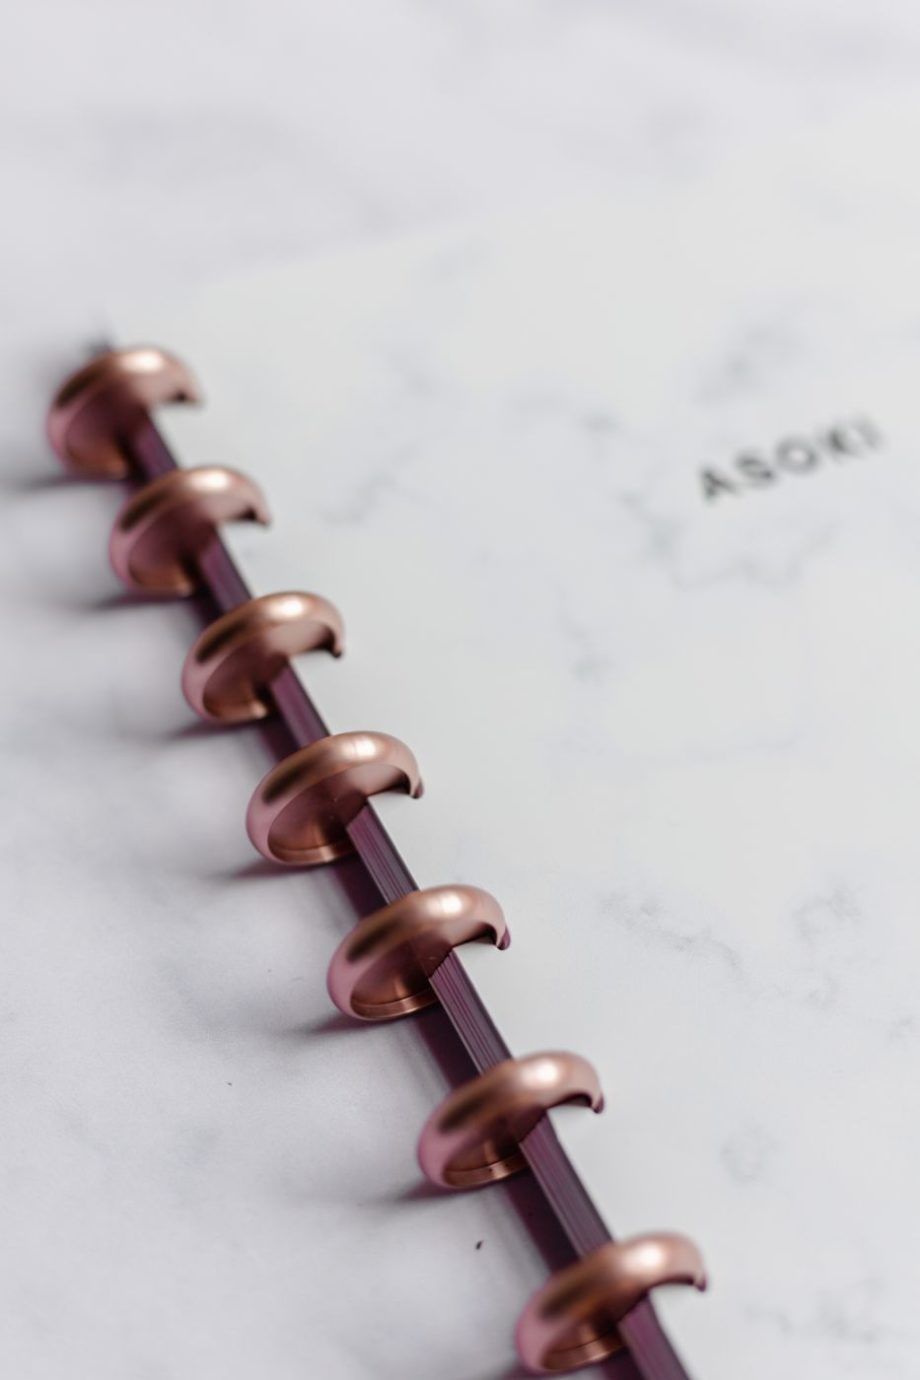 Marble Asoki notebook with rose-gold metal discs